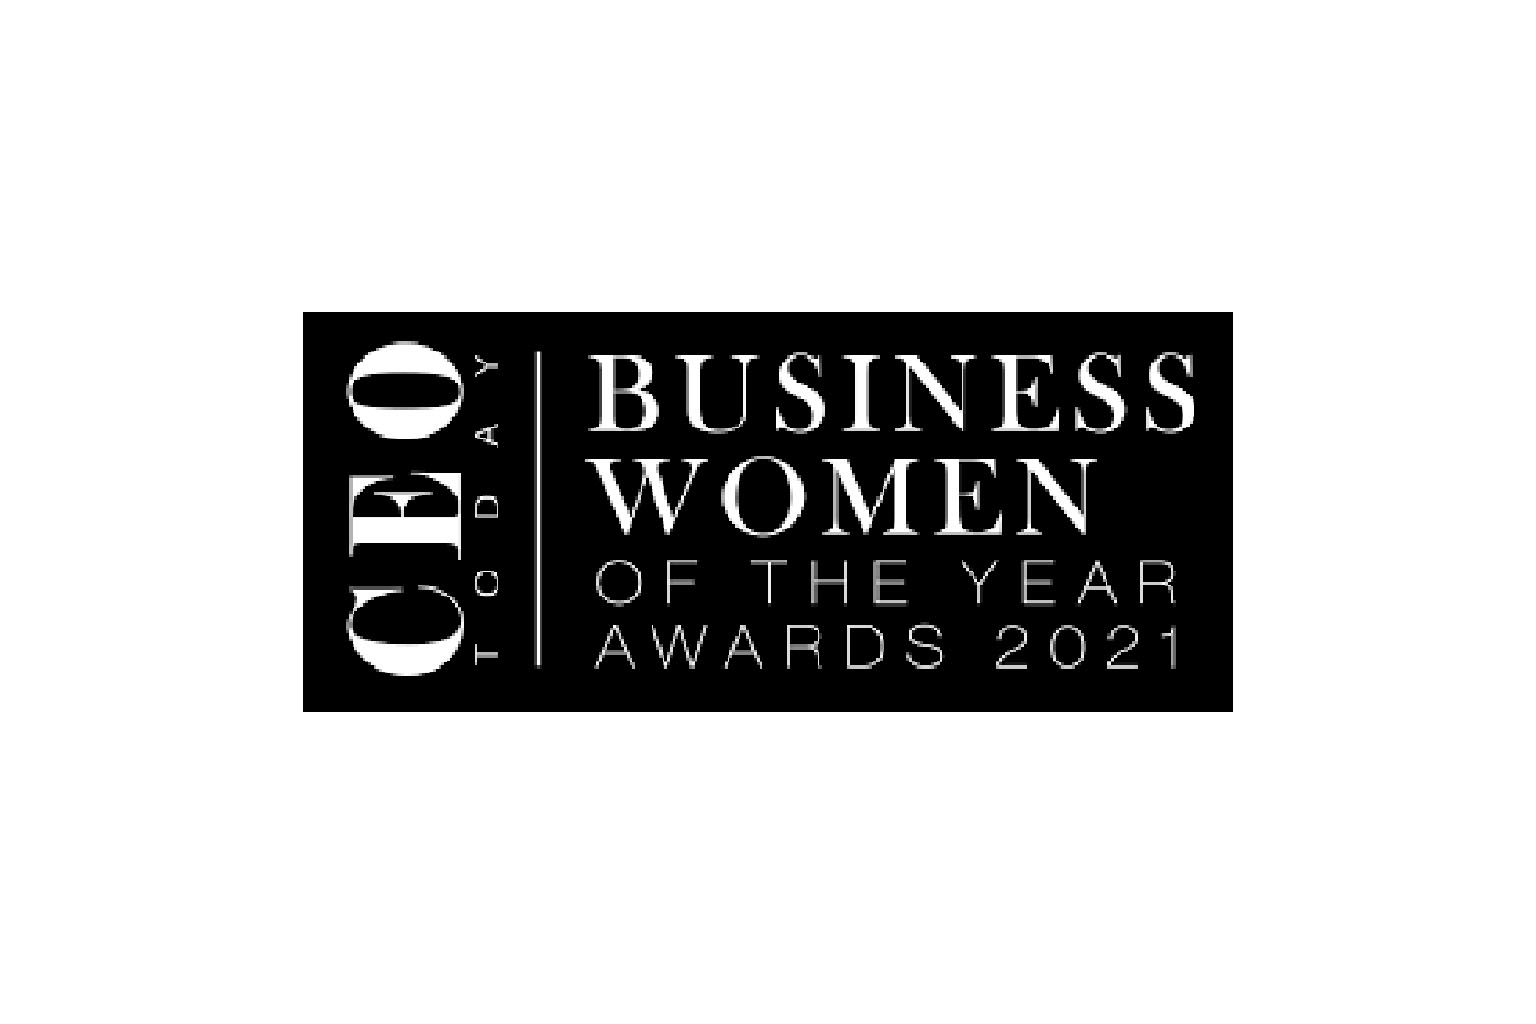 Business Women Award of the Year